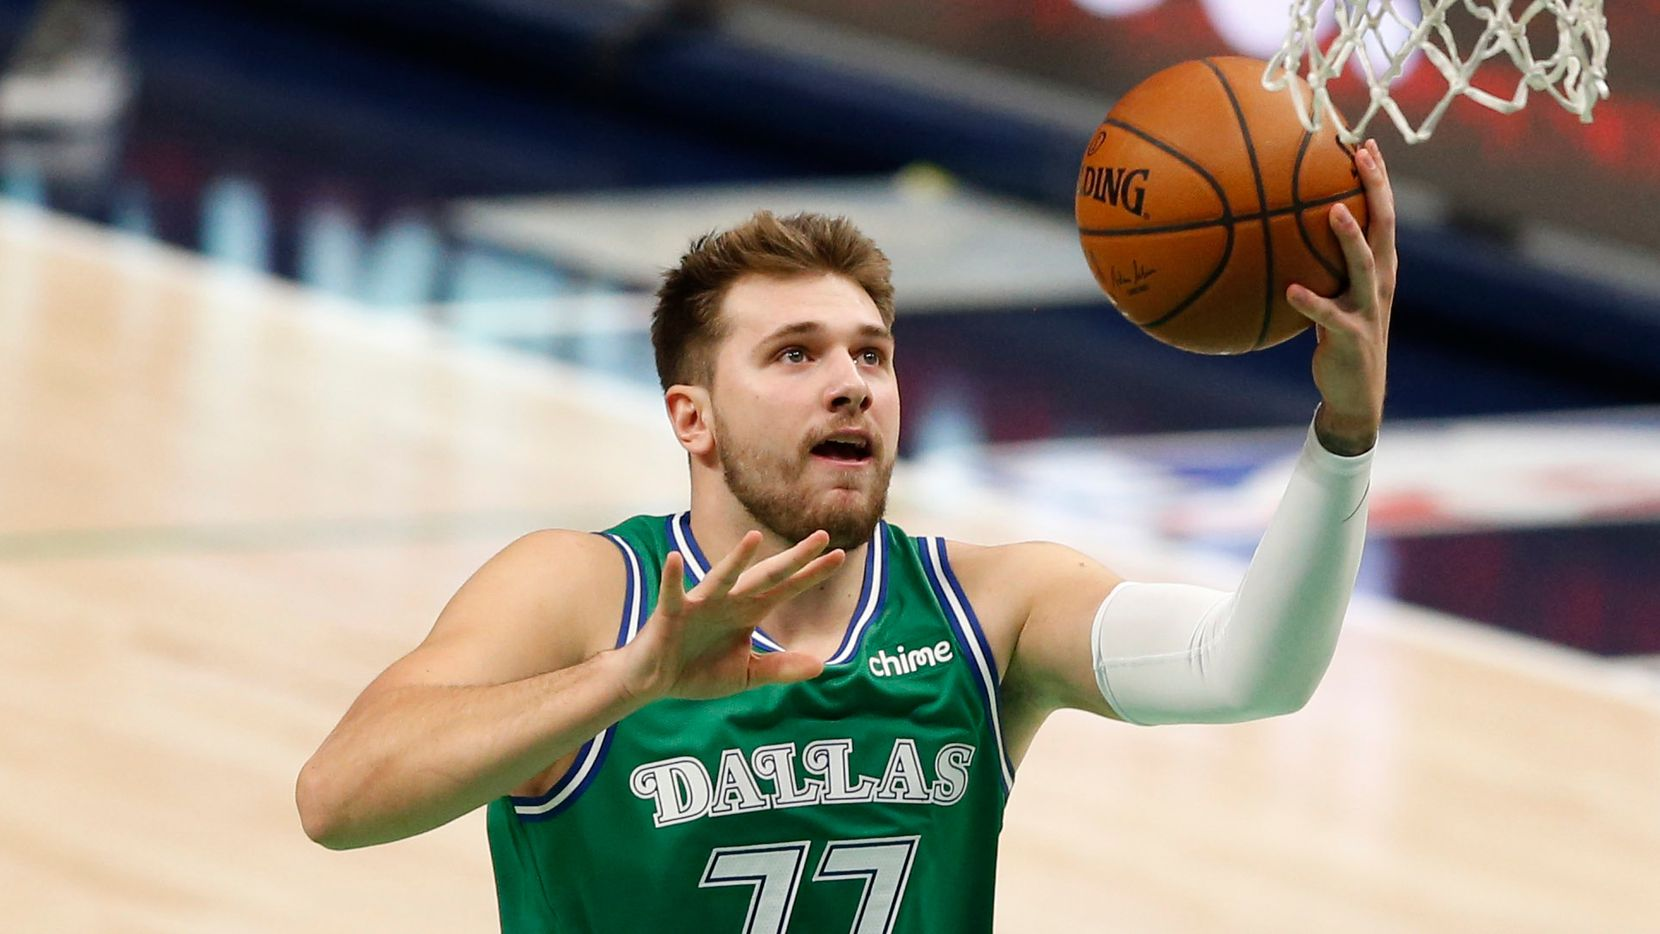 Dallas Mavericks guard Luka Doncic (77) attempts a layup in a game against the Charlotte Hornets during the first quarter of play in the home opener at American Airlines Center on Wednesday, December 30, 2020 in Dallas.